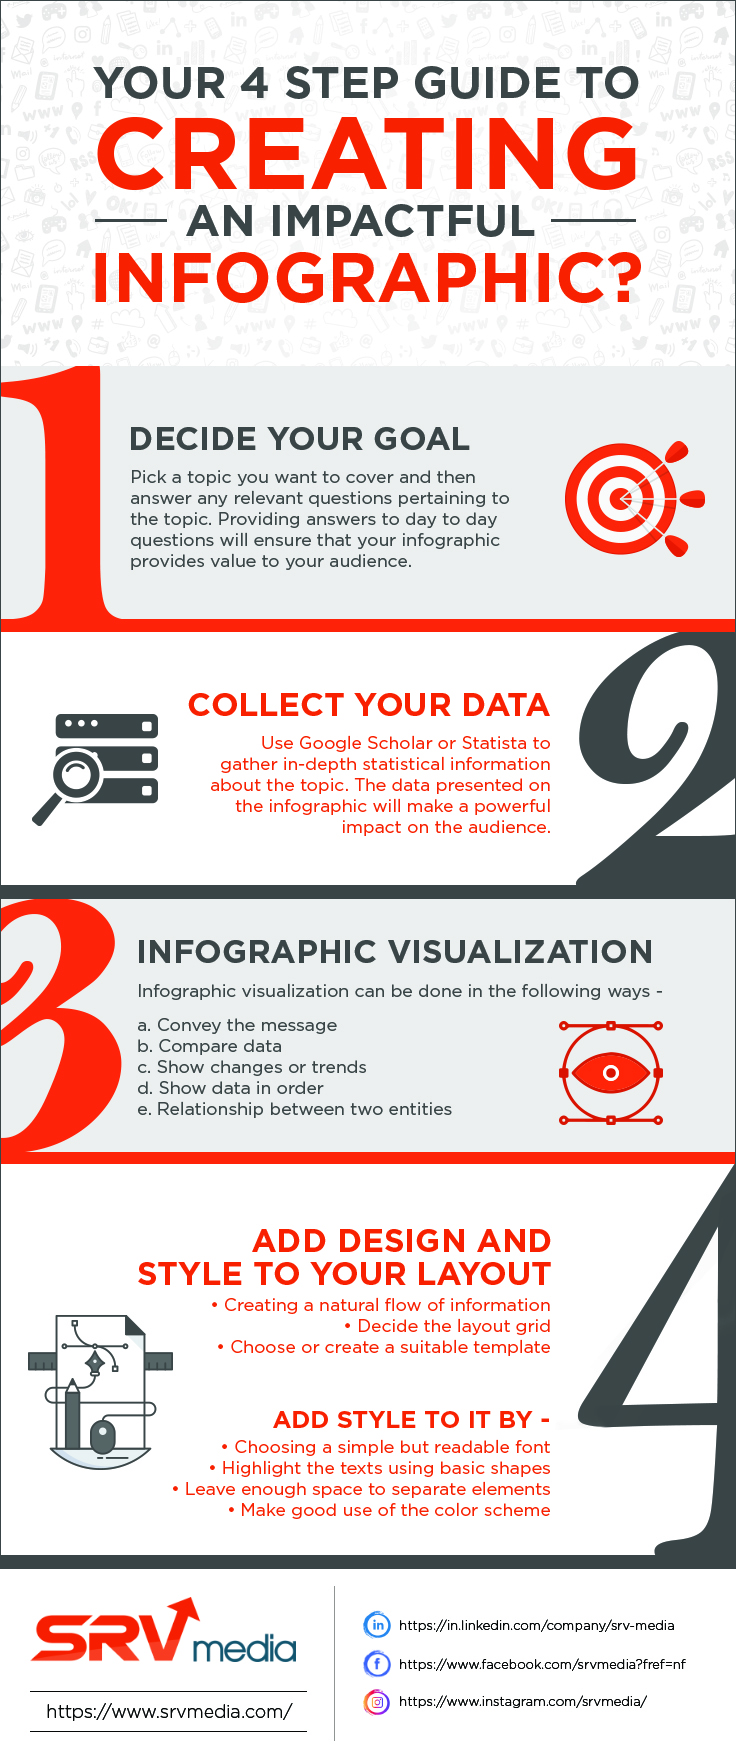 infographic How to create an infographic for Instagram - Digital